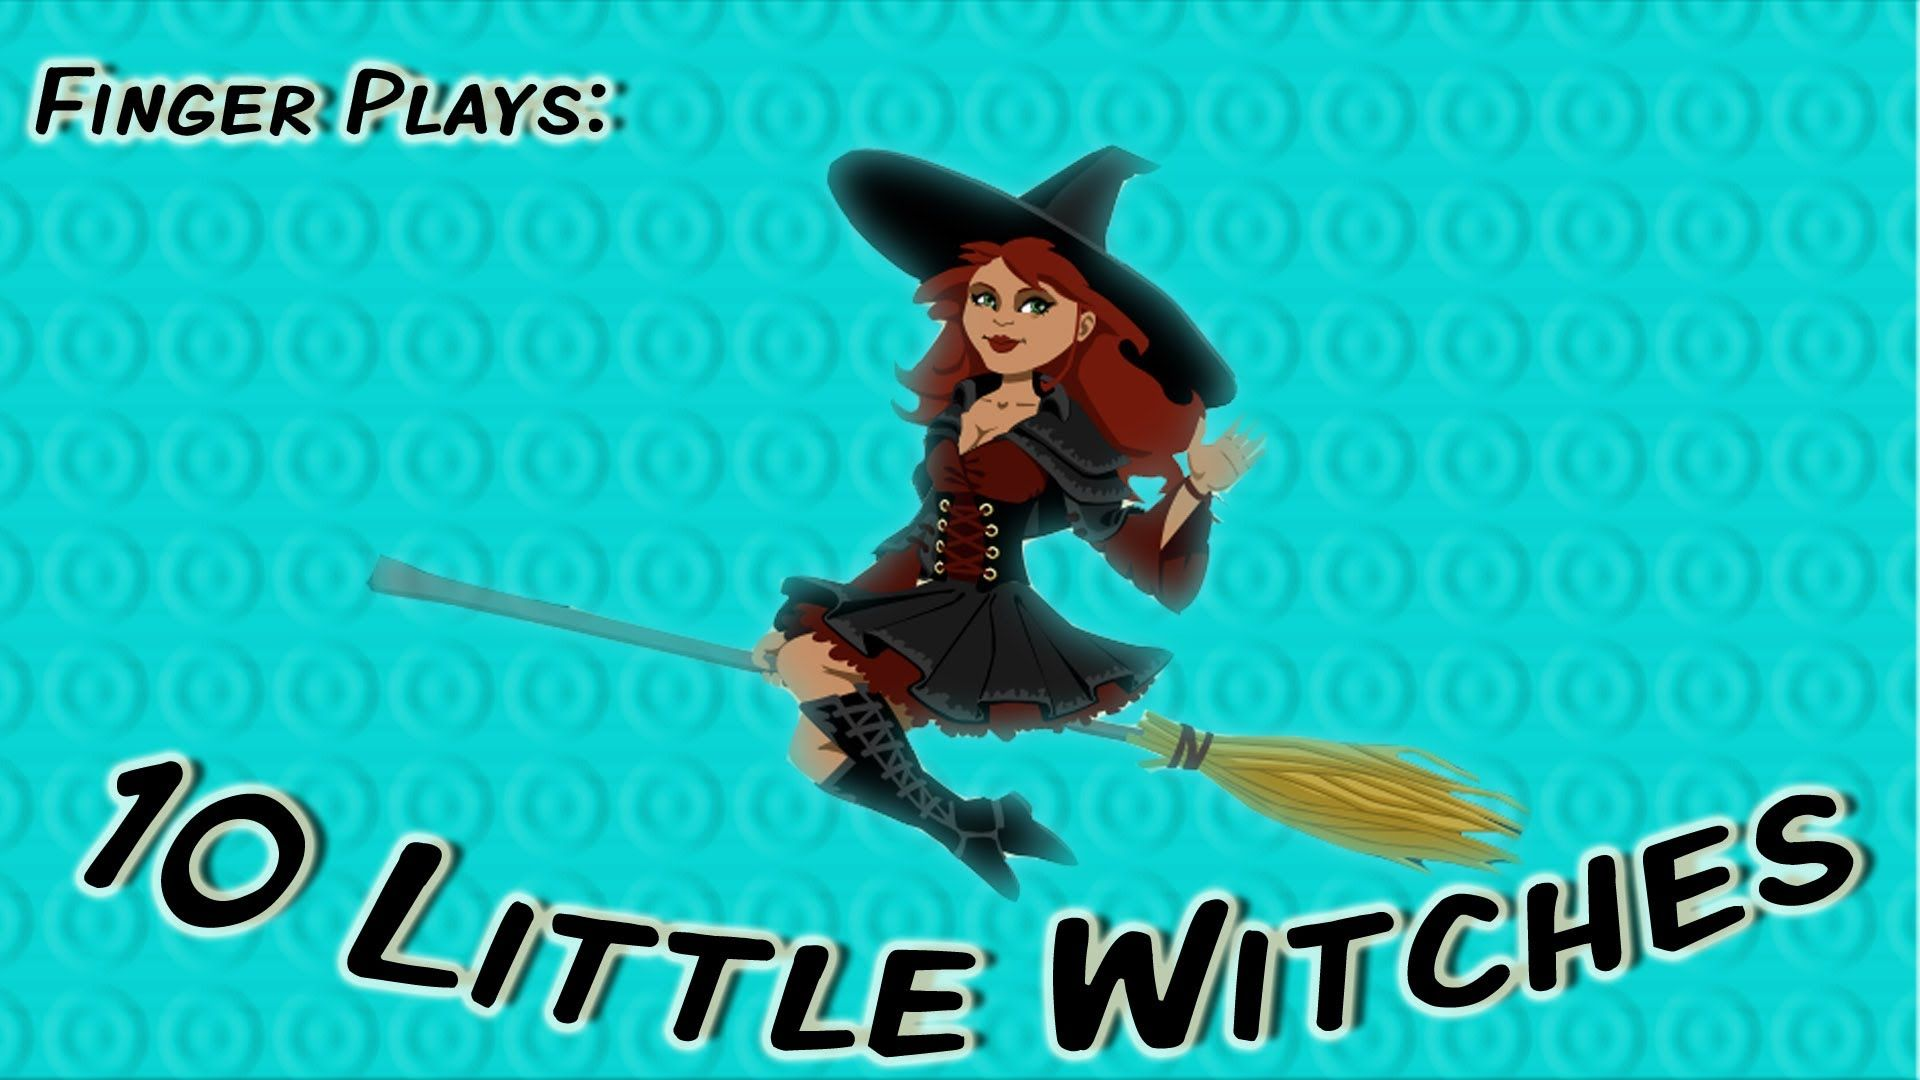 10 little witches | halloween counting song for children | seasonal